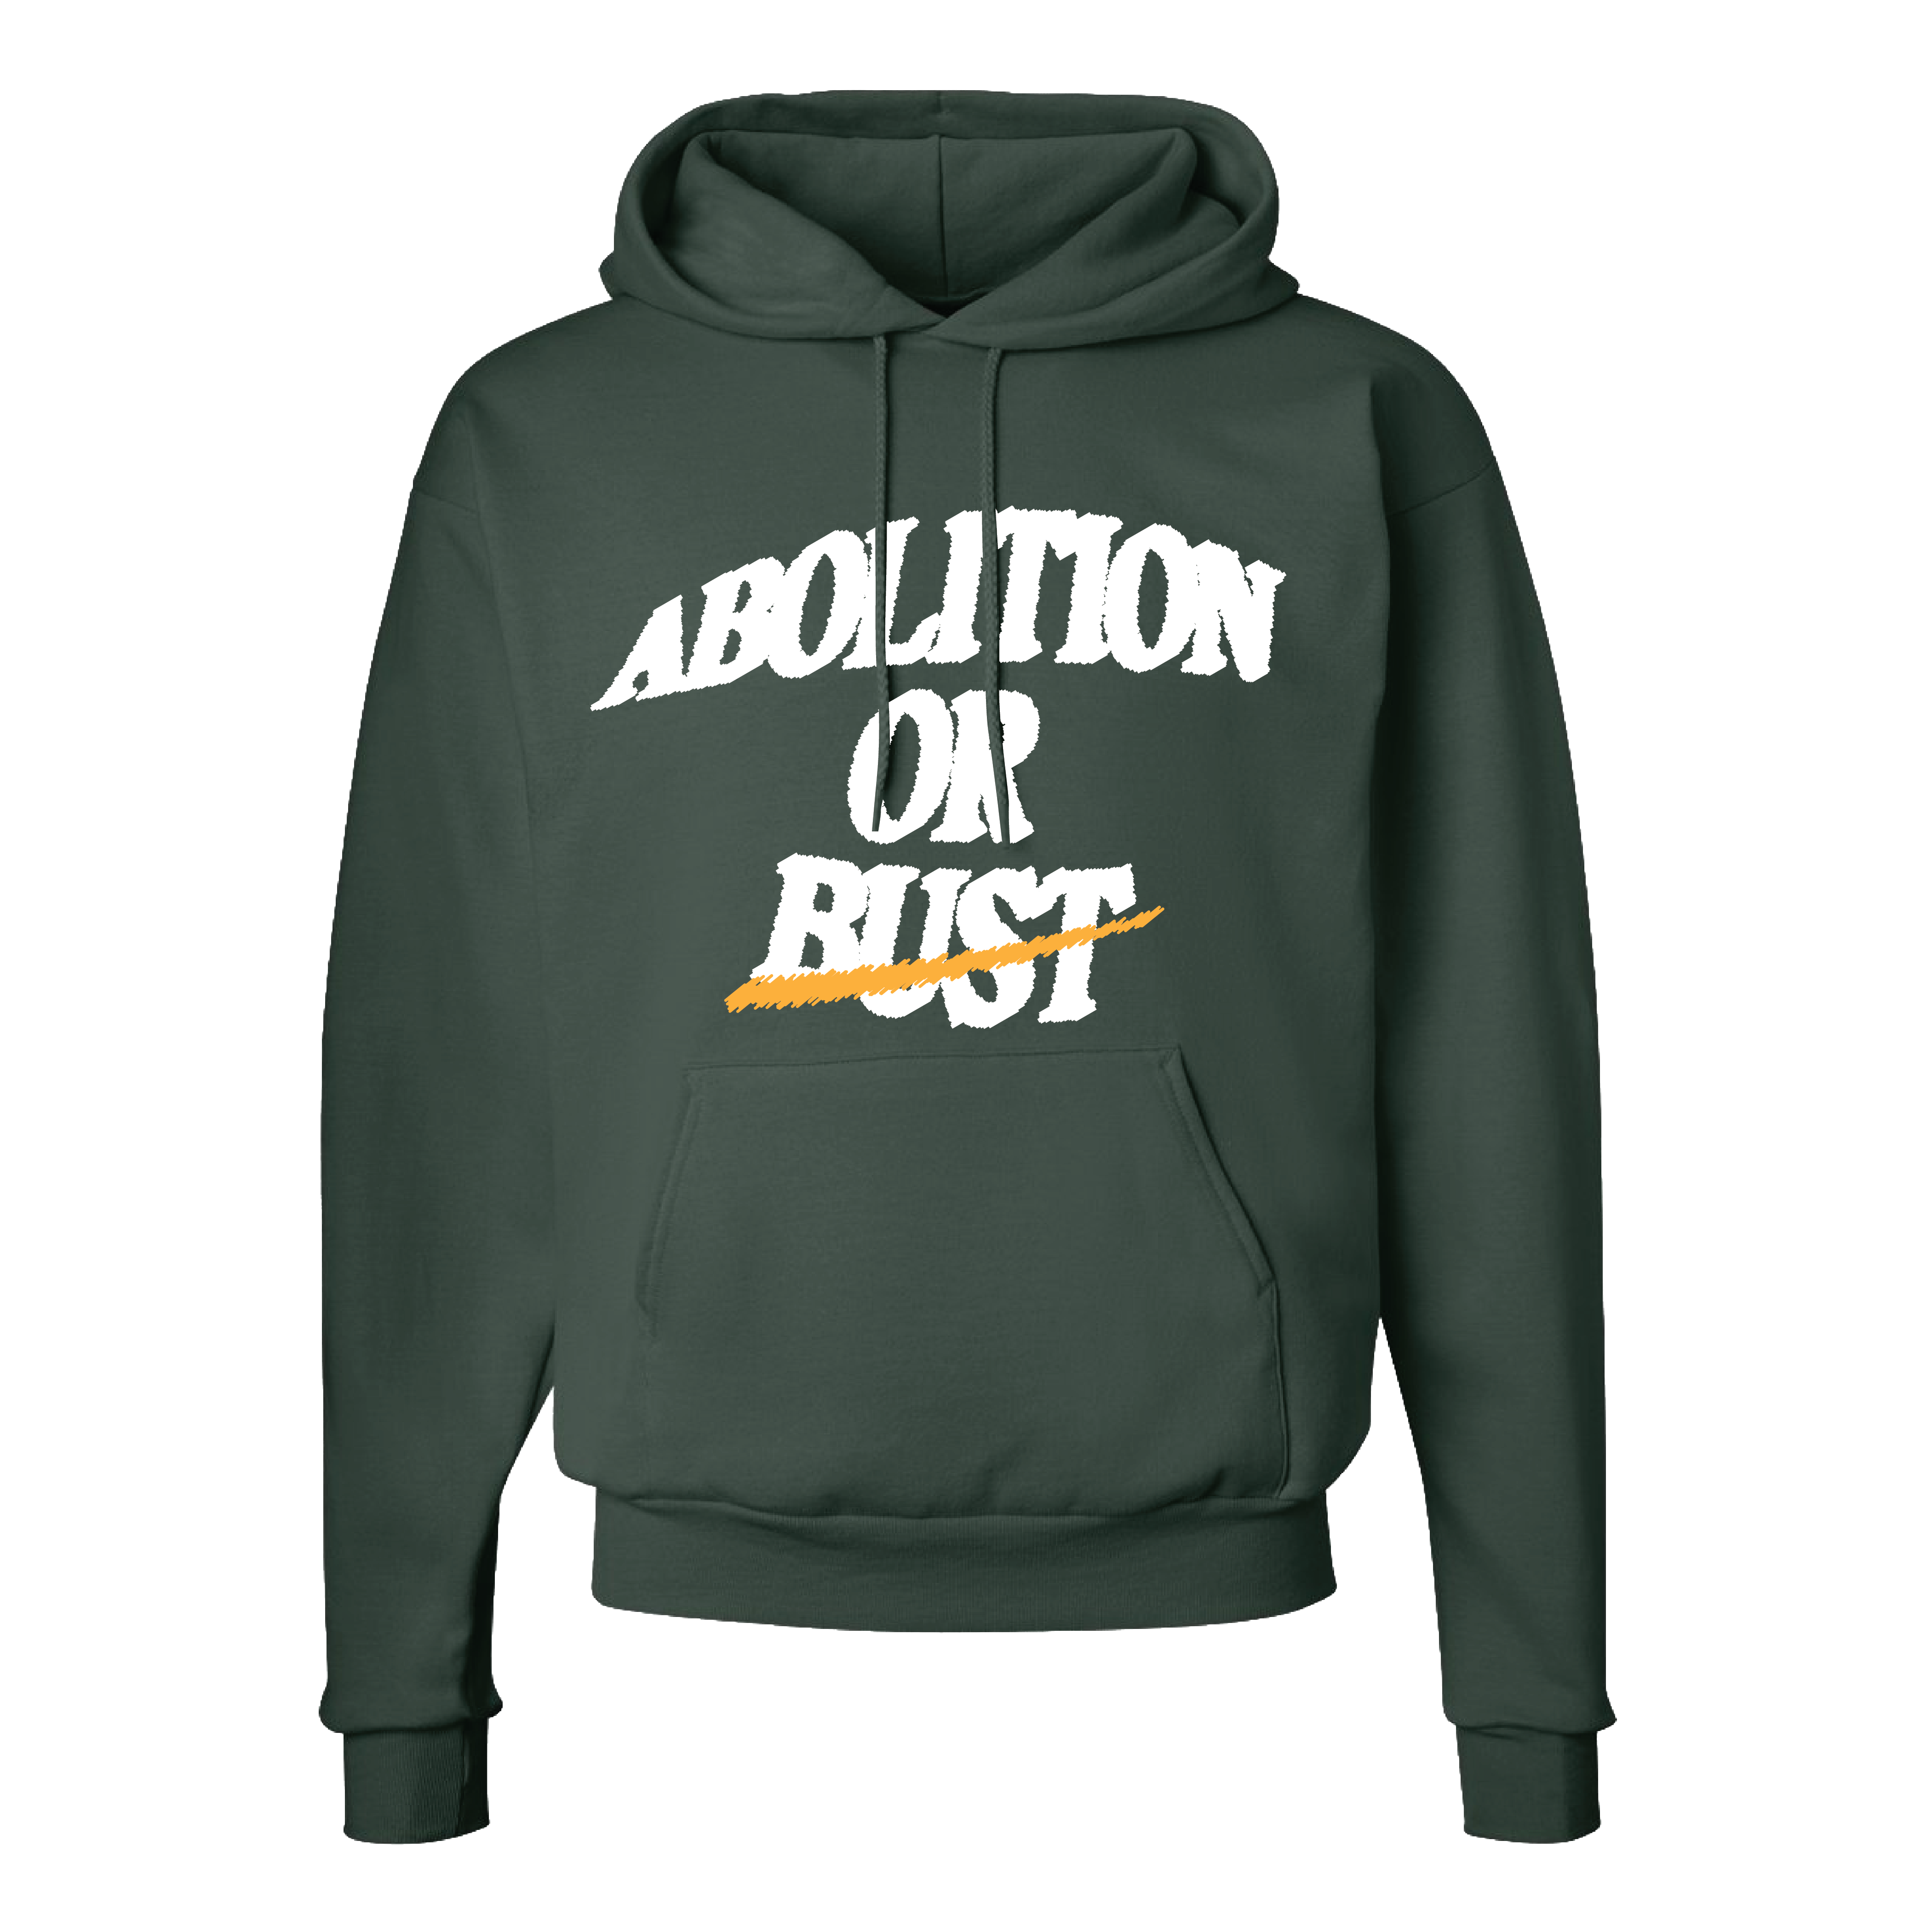 Abolition Hoodie